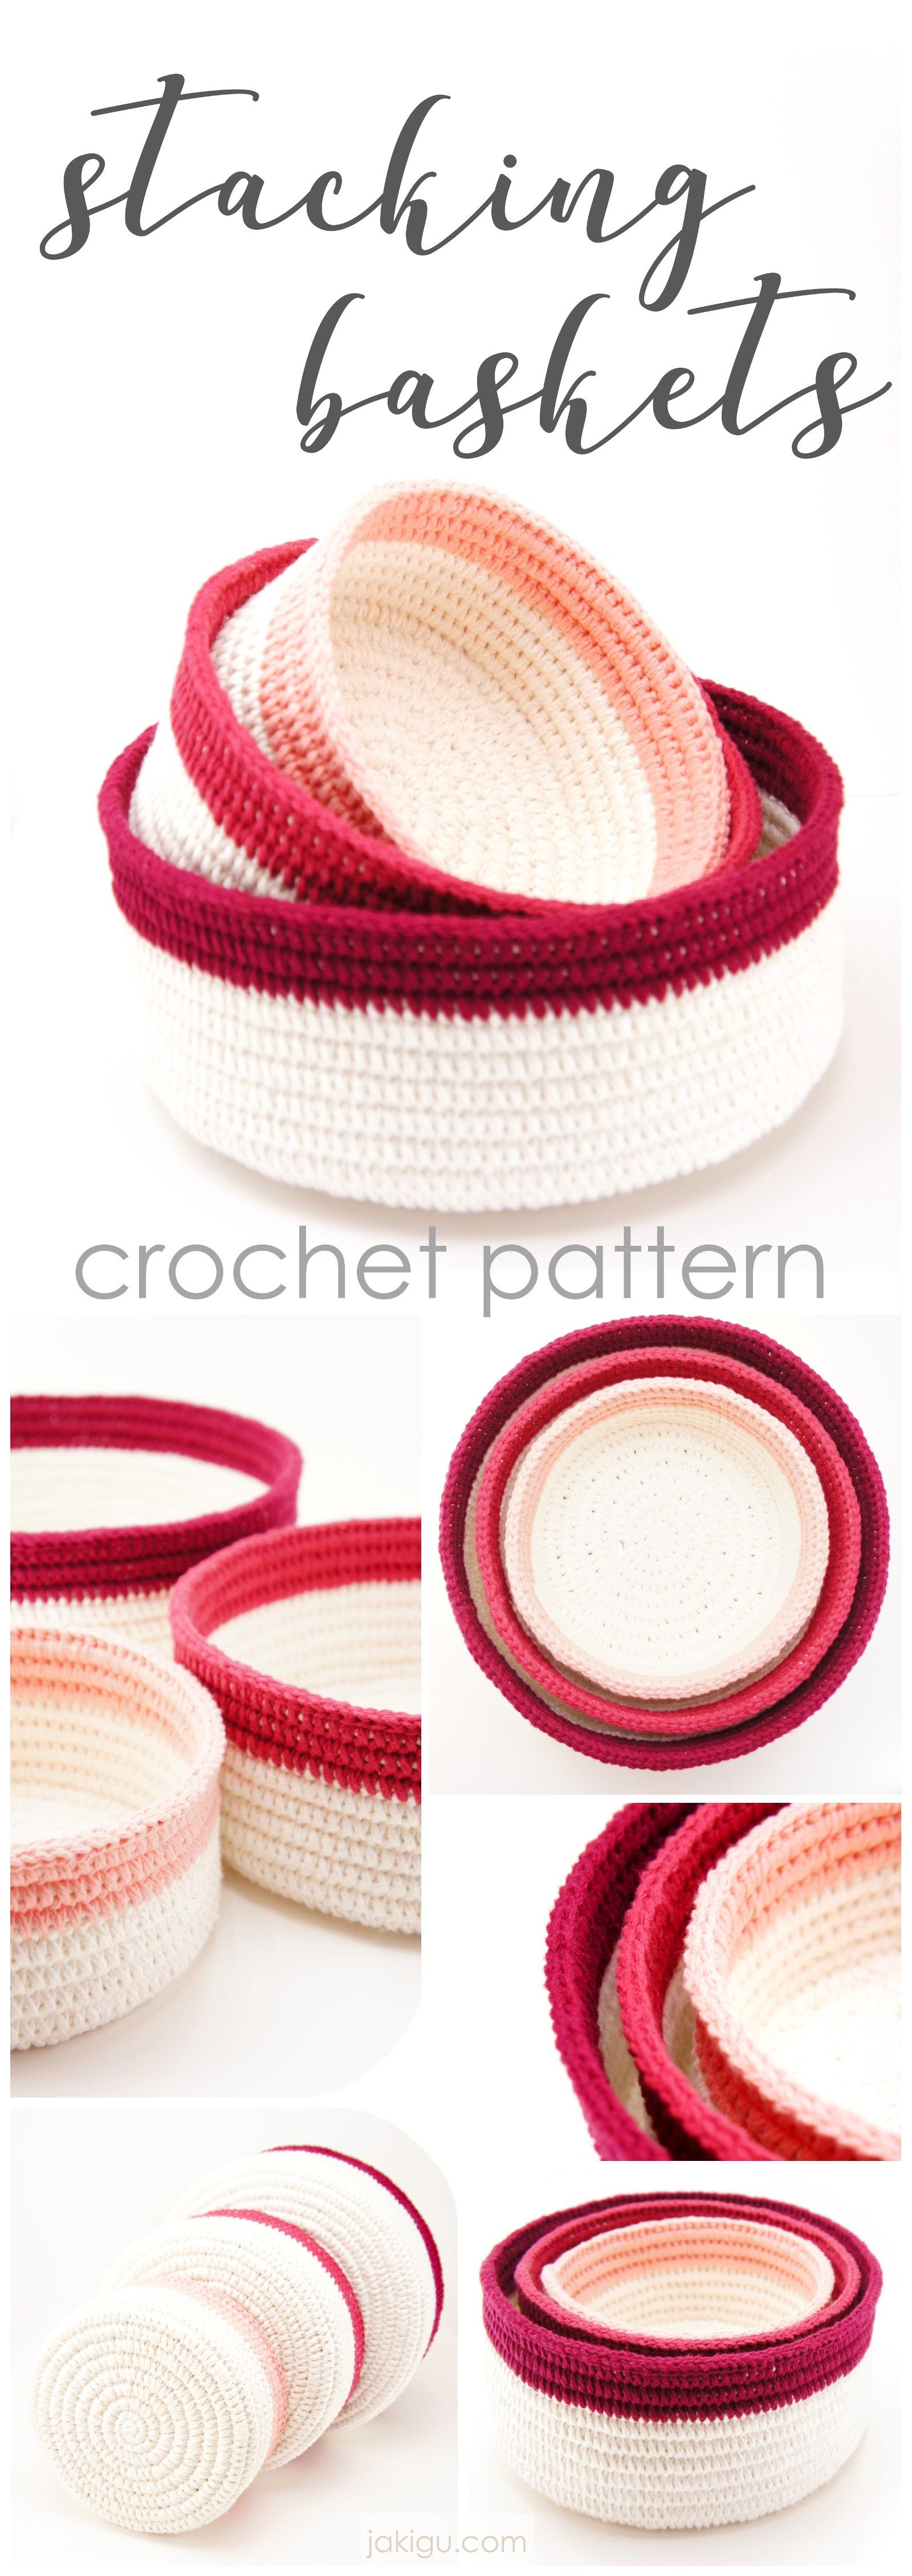 Sturdy and durable crochet basket pattern / stacking crochet baskets ...